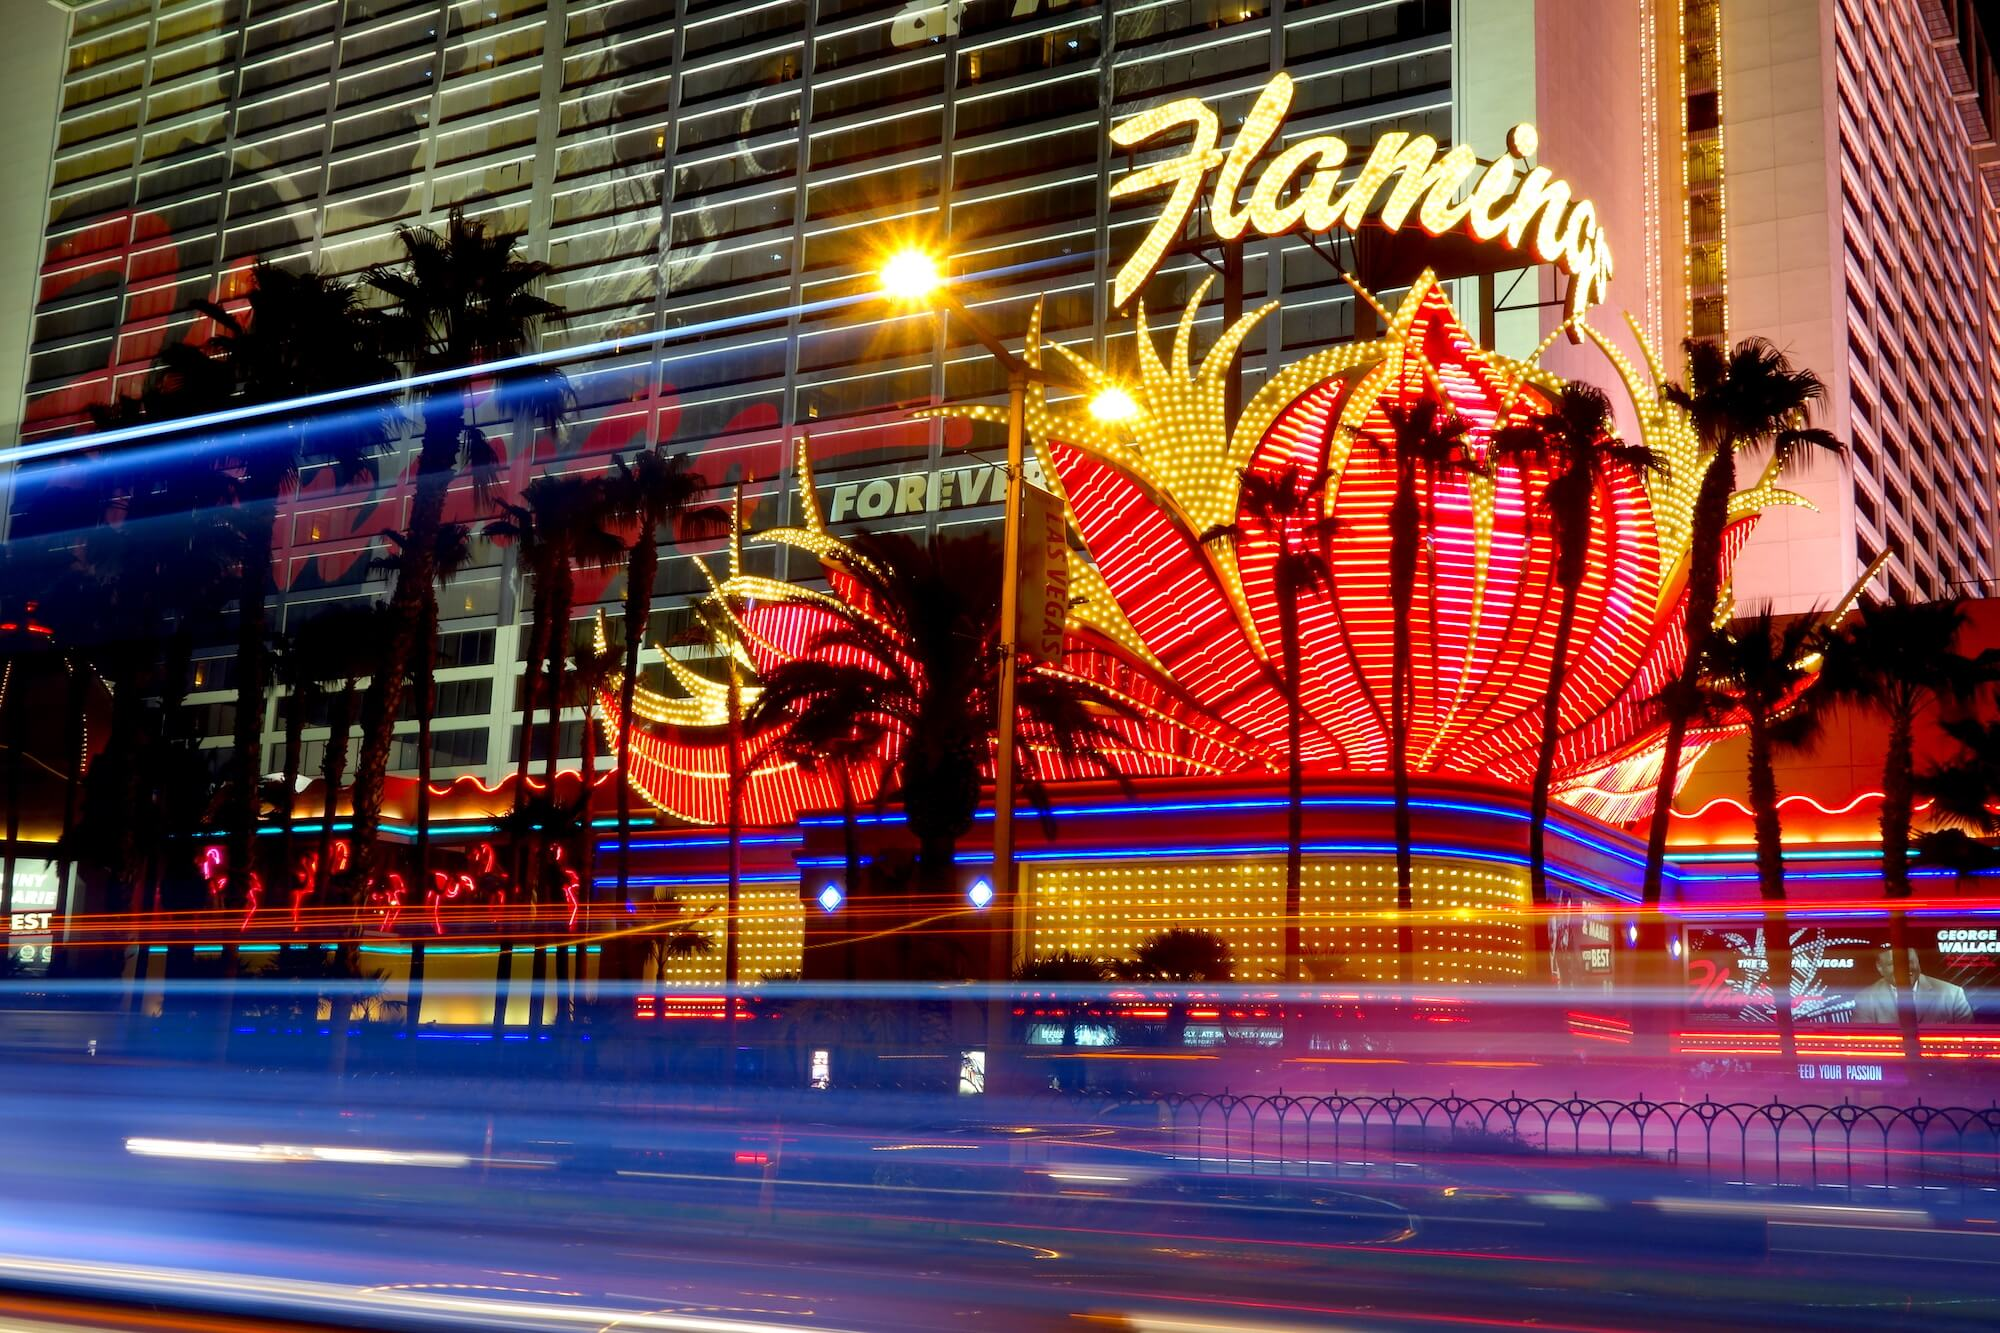 Flamingo Hotel & Casino Las Vegas USA